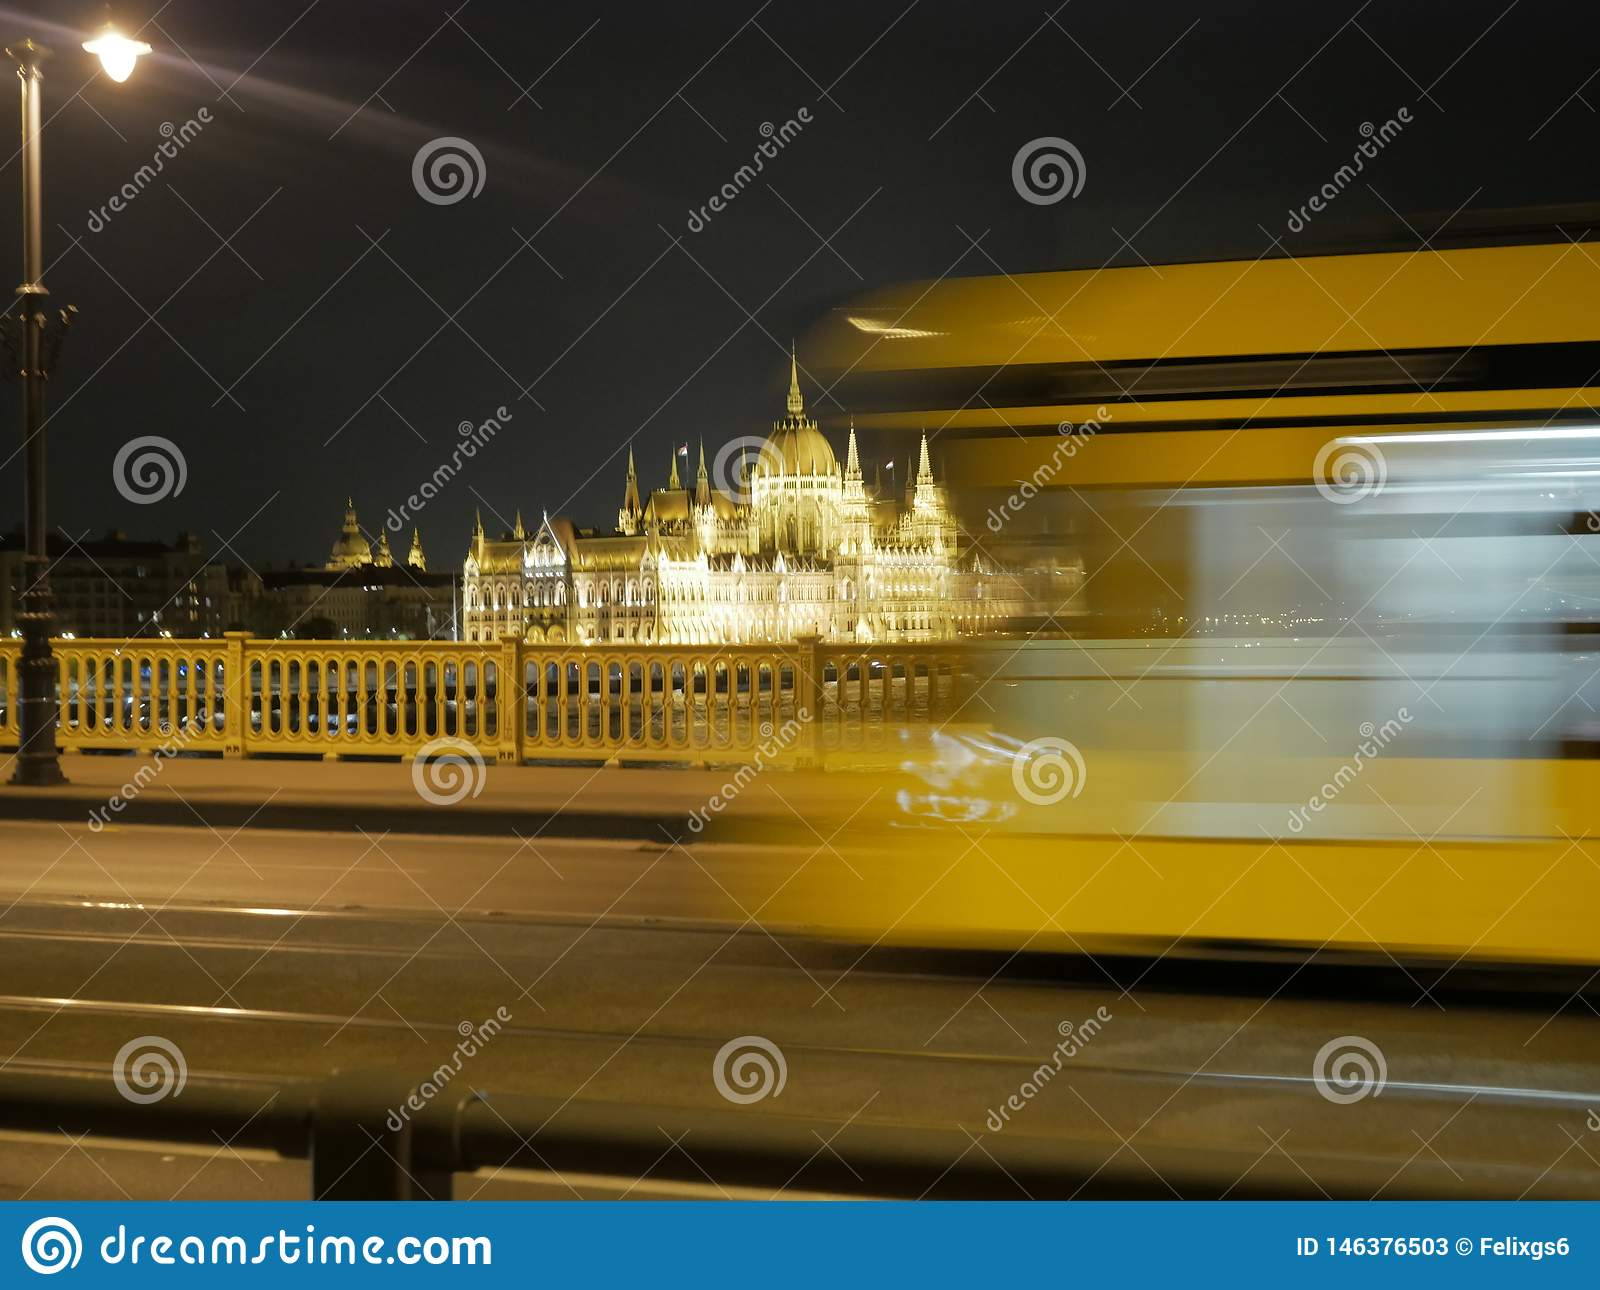 Parliament Building  of Budapest  night time